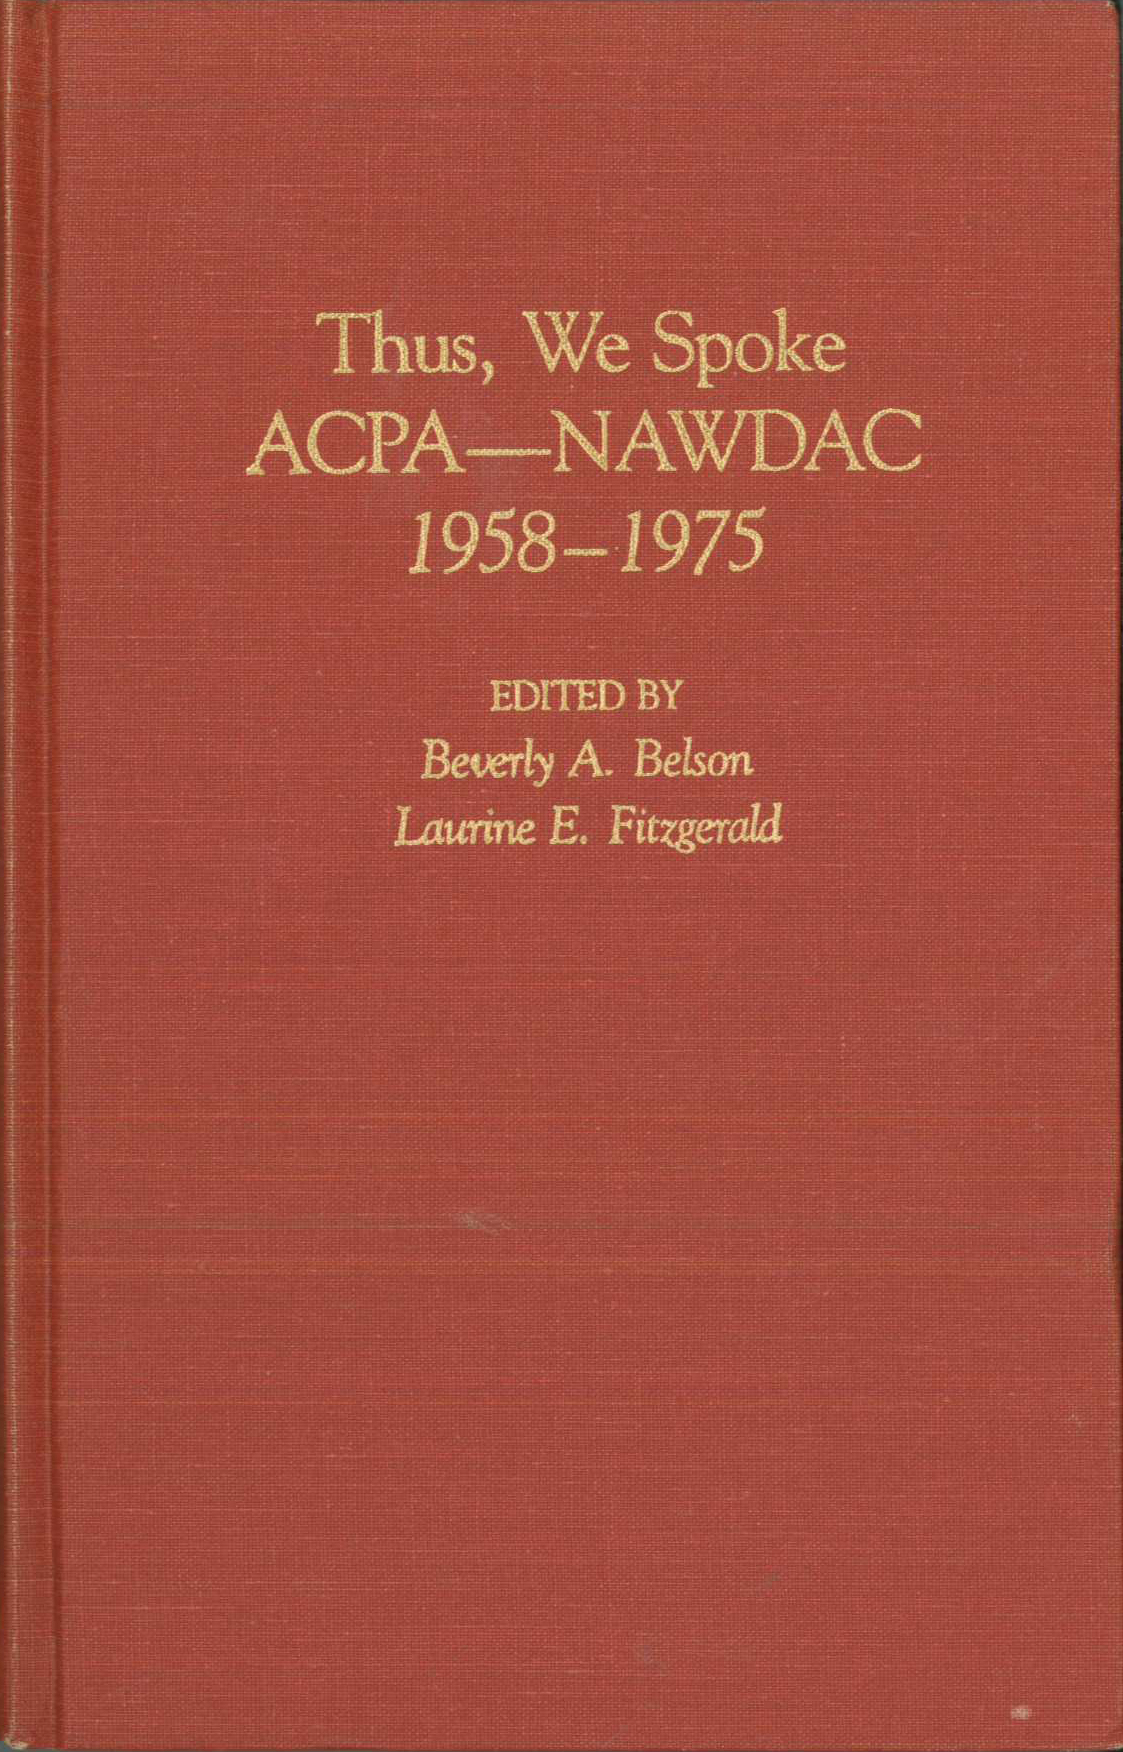 Thus We Spoke: ACPA-NAWDAC, 1958-1975